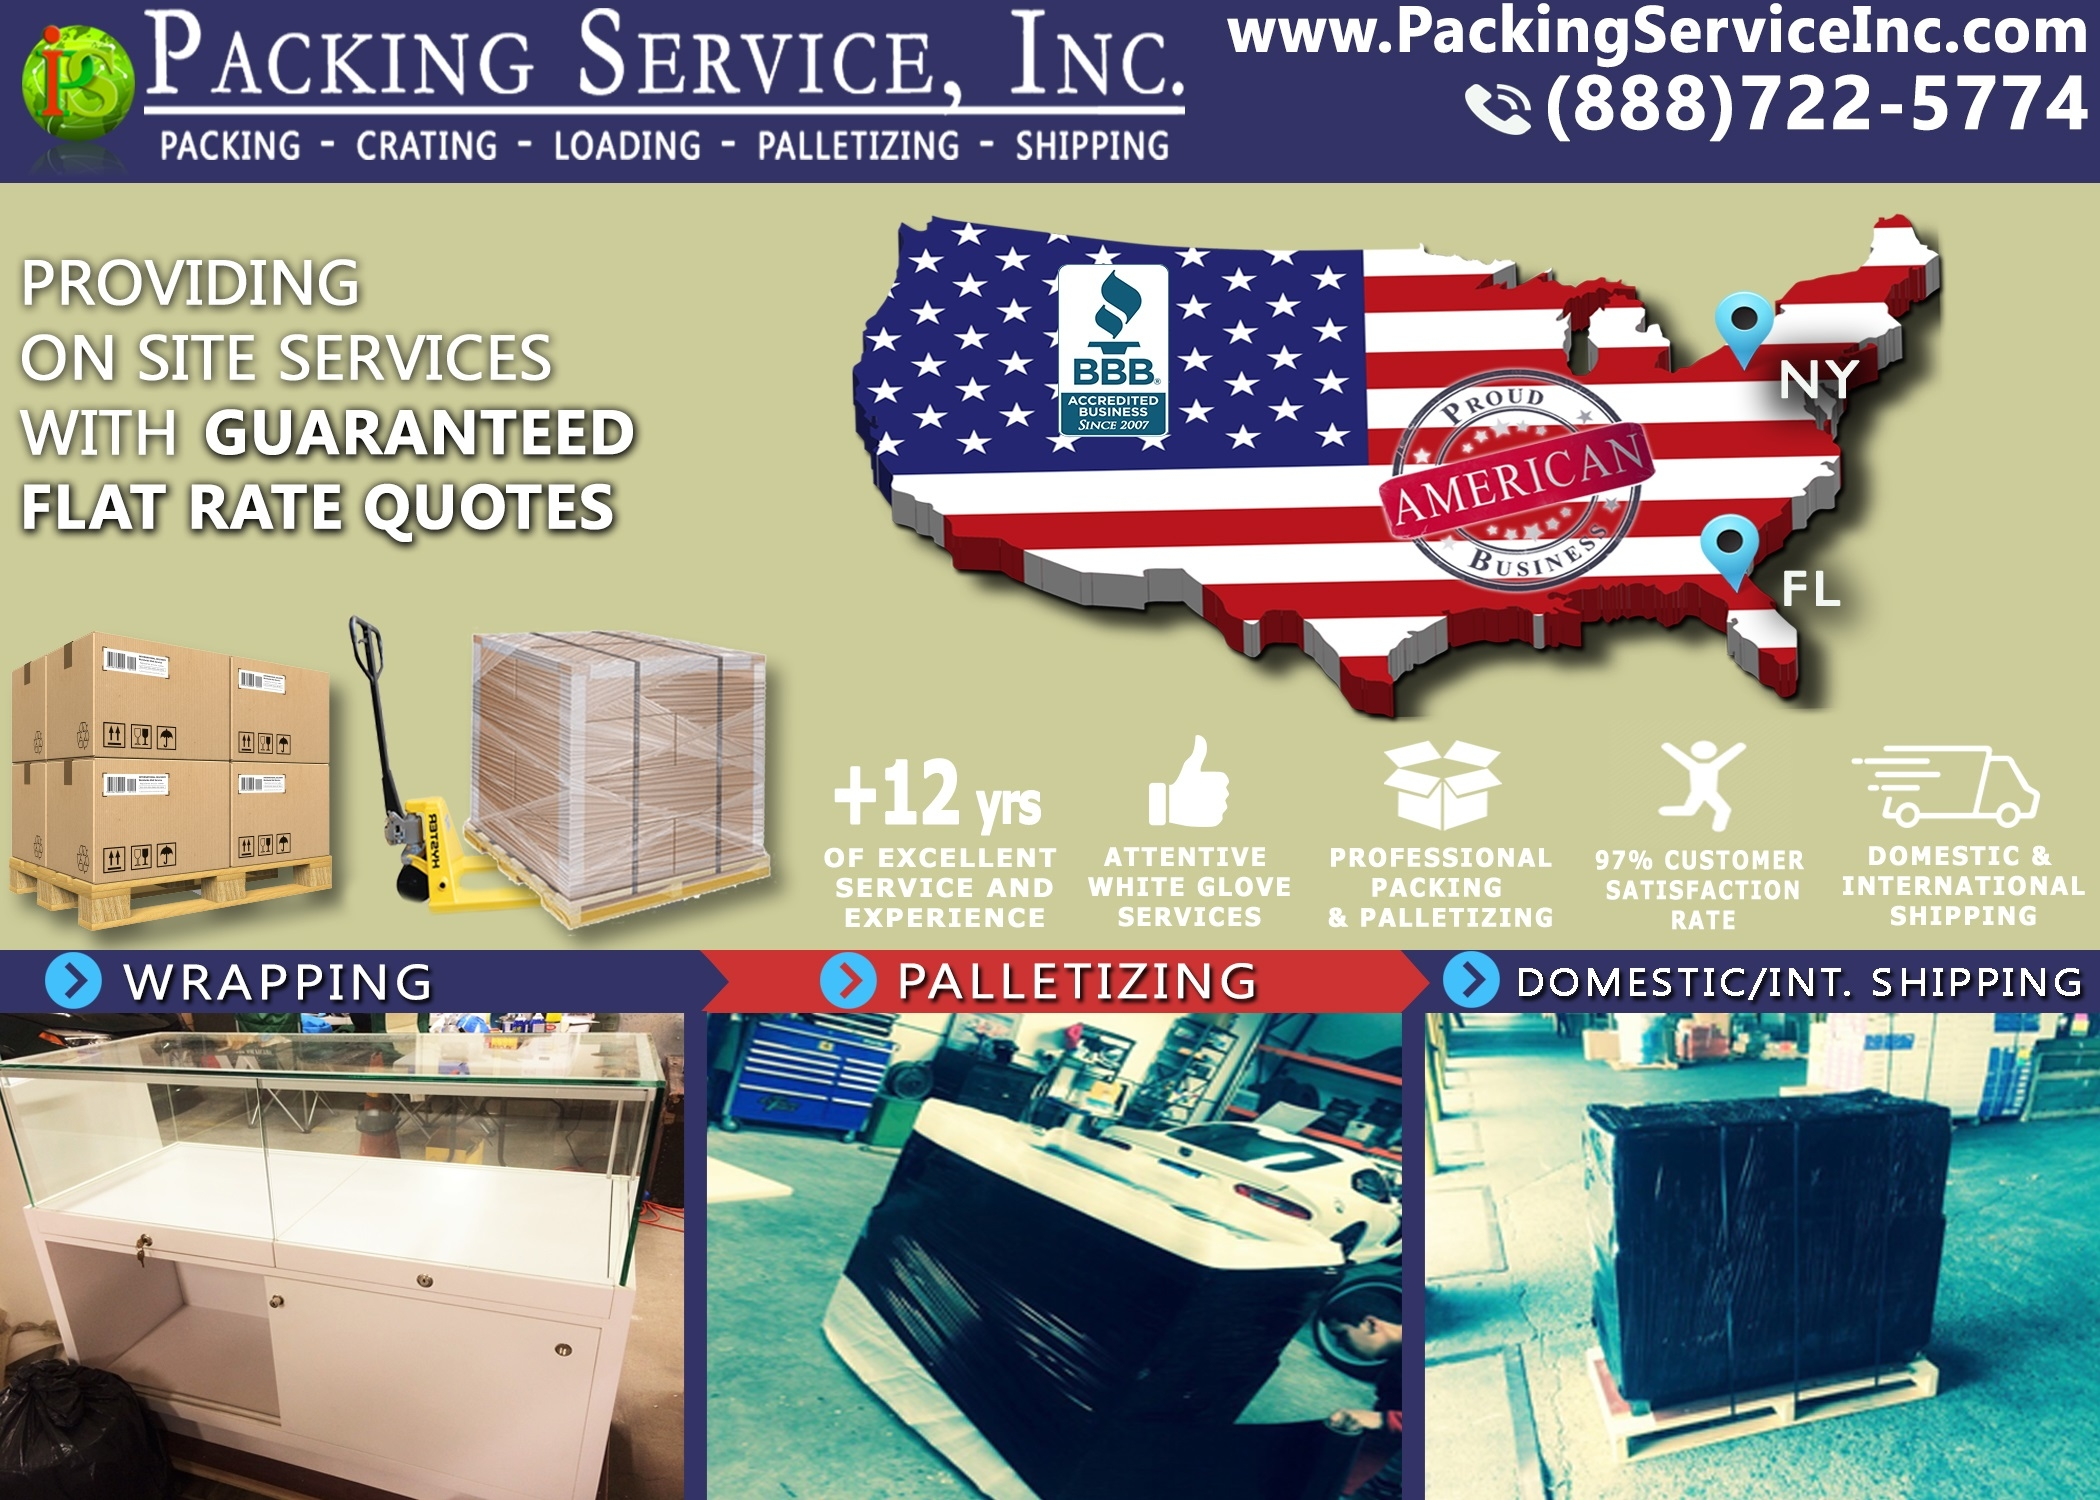 Packing Service, Inc. image 2